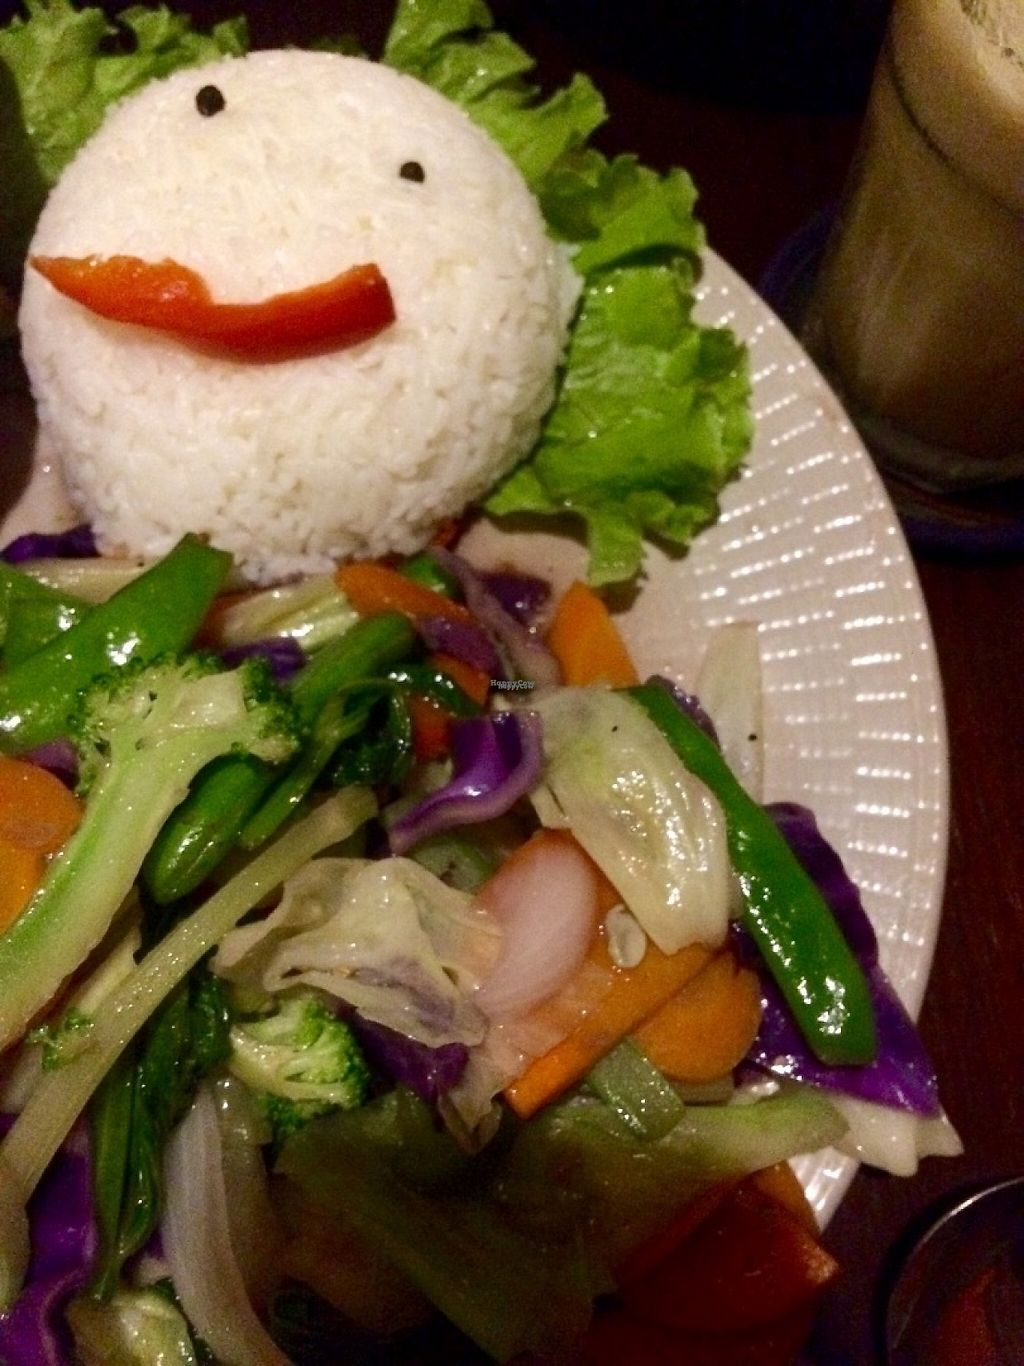 """Photo of Tree Hugger Cafe  by <a href=""""/members/profile/IsabelleLea"""">IsabelleLea</a> <br/>rice with vegetables <br/> February 13, 2017  - <a href='/contact/abuse/image/82194/226288'>Report</a>"""